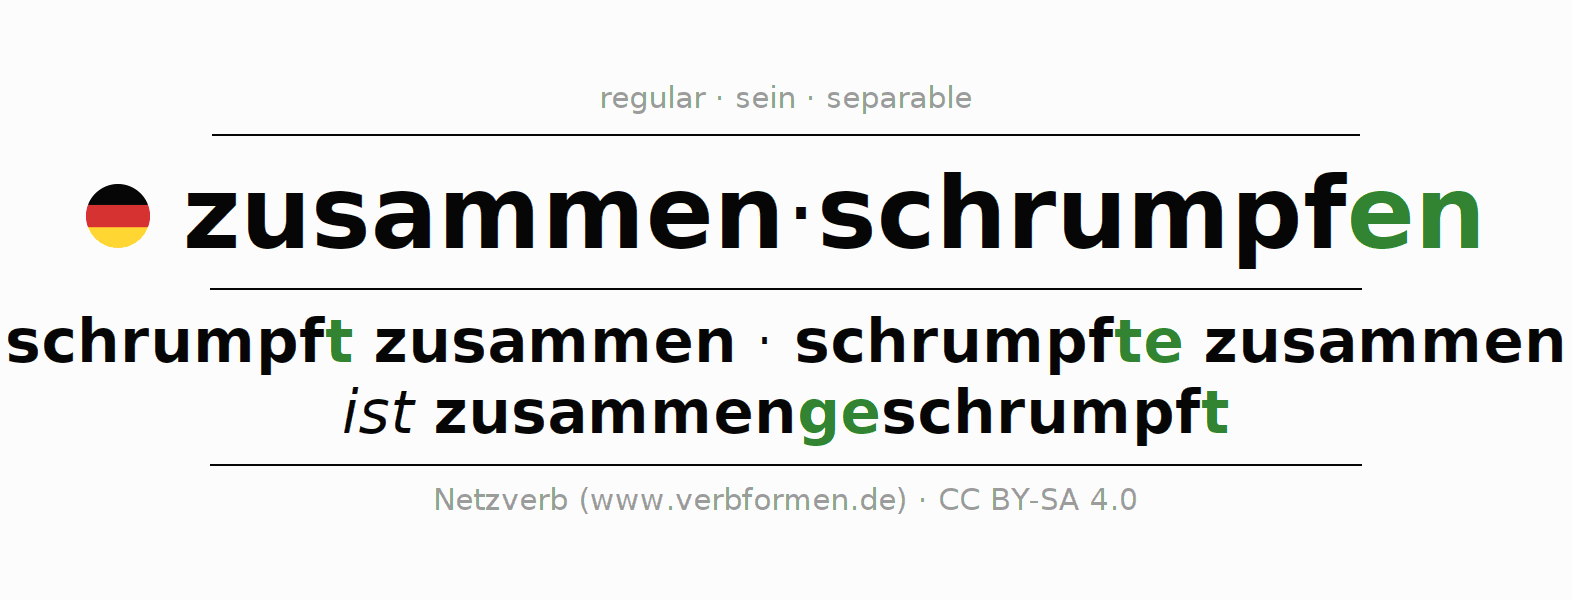 Entire conjugation of the German verb zusammenschrumpfen. All tenses and modes are clearly represented in a table.